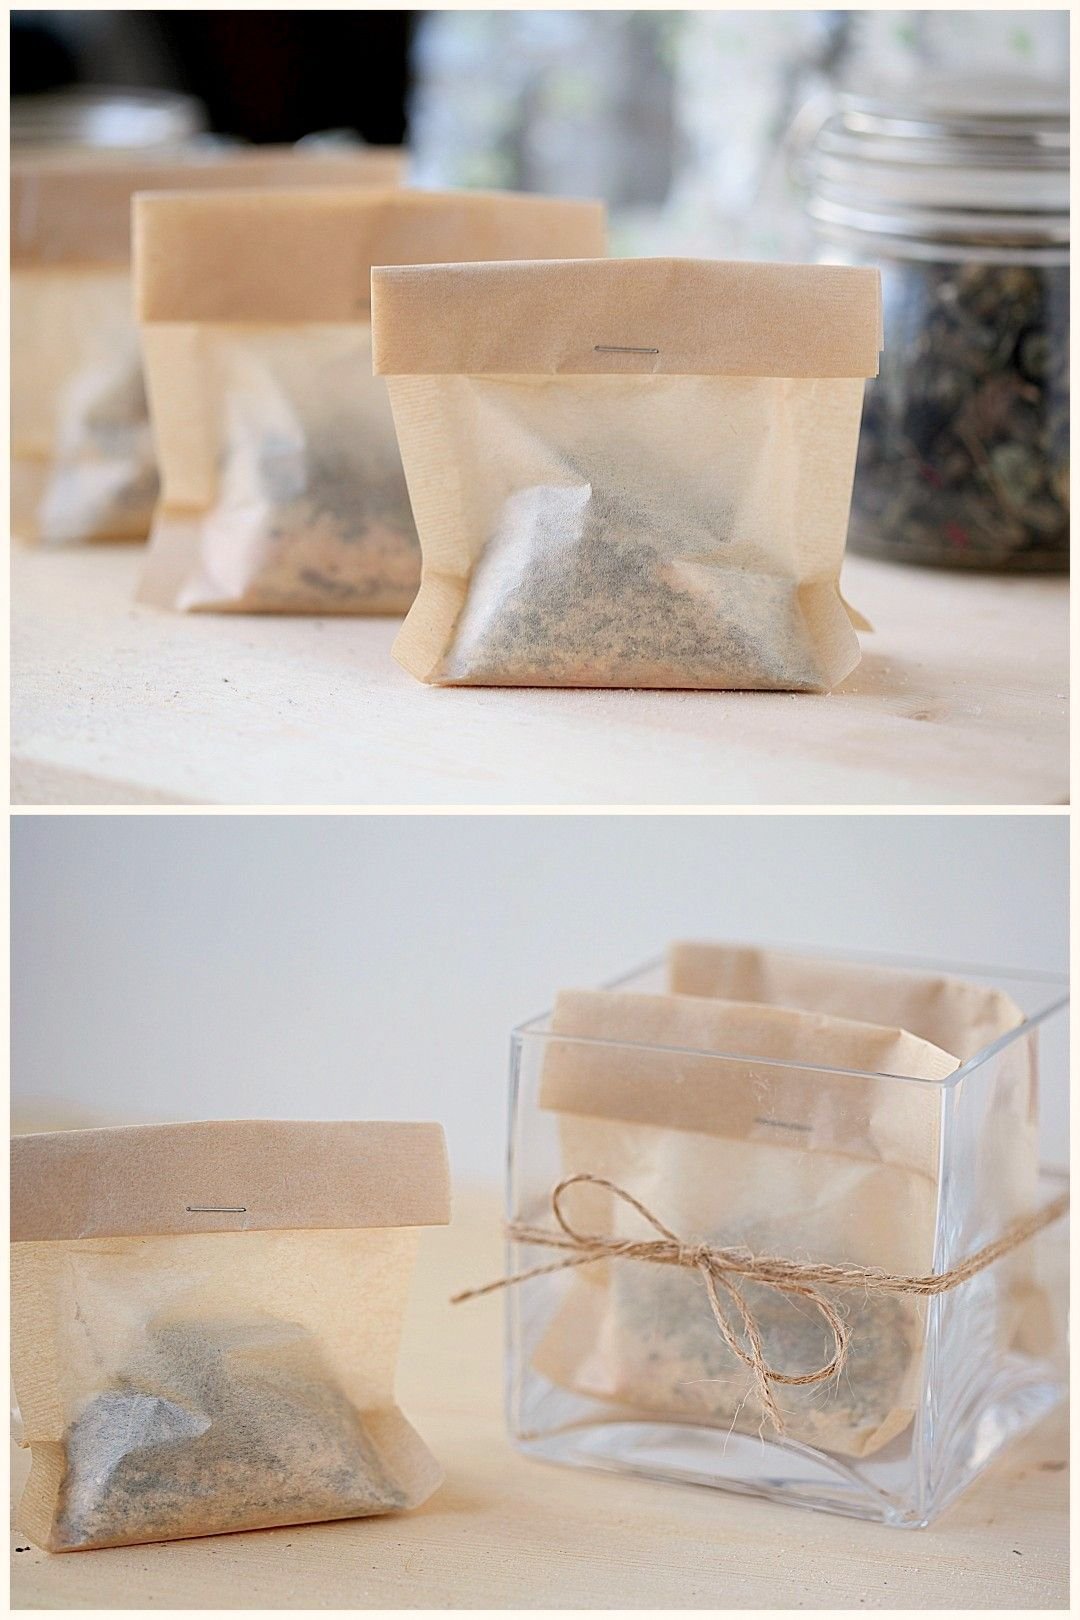 Herbal Tub Tea Just Add One Bag To A Warm Bath And No Mess